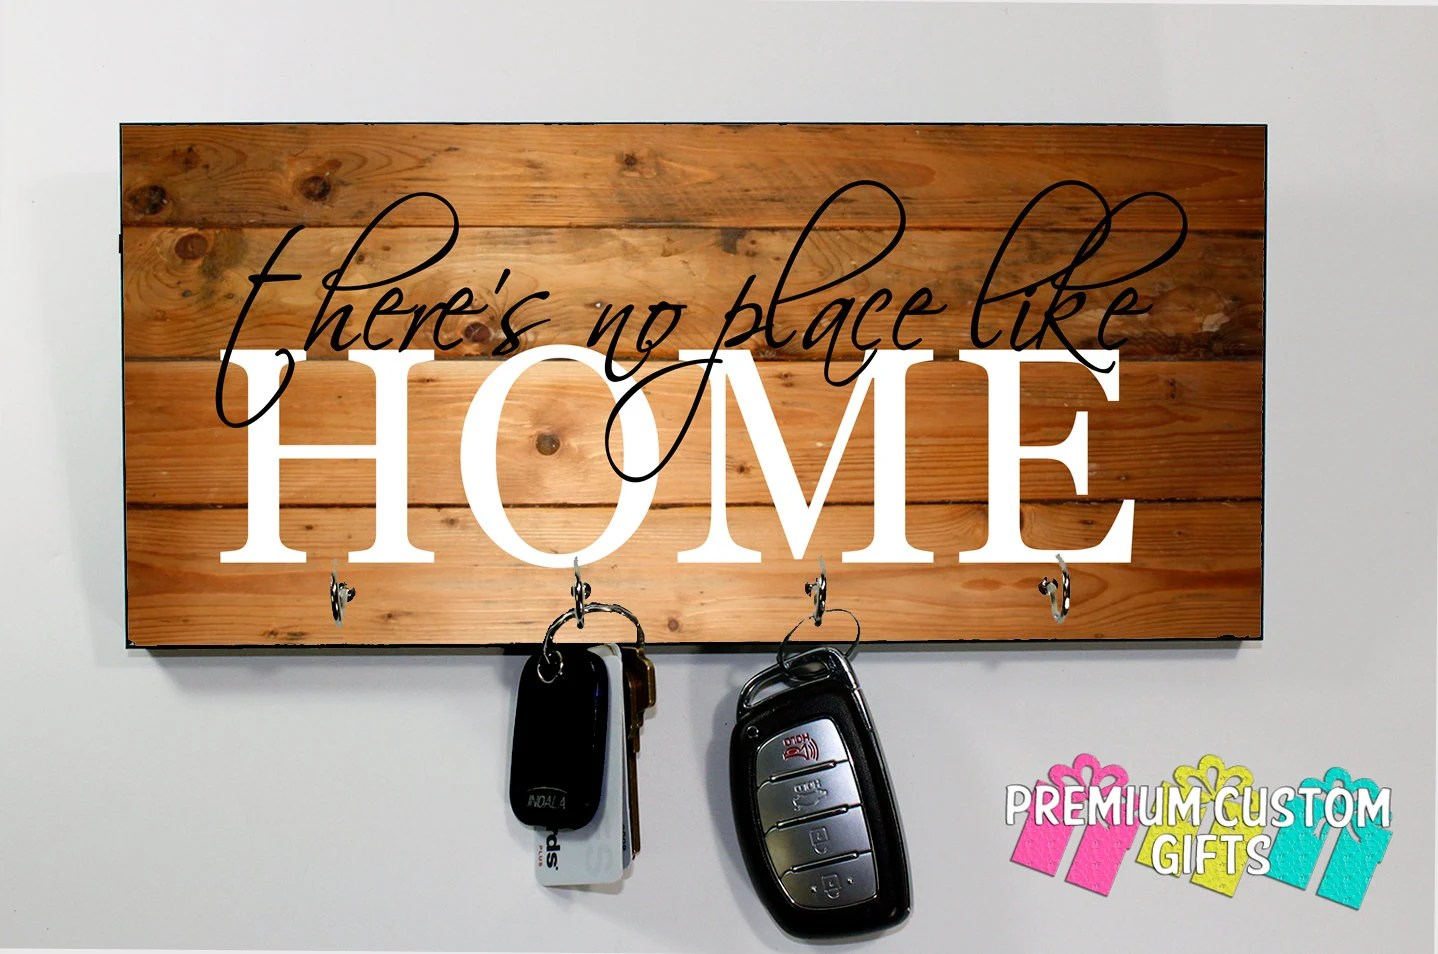 Home Key Holder For Wall There S No Place Like Home Key Holder On Mdf Wood Look